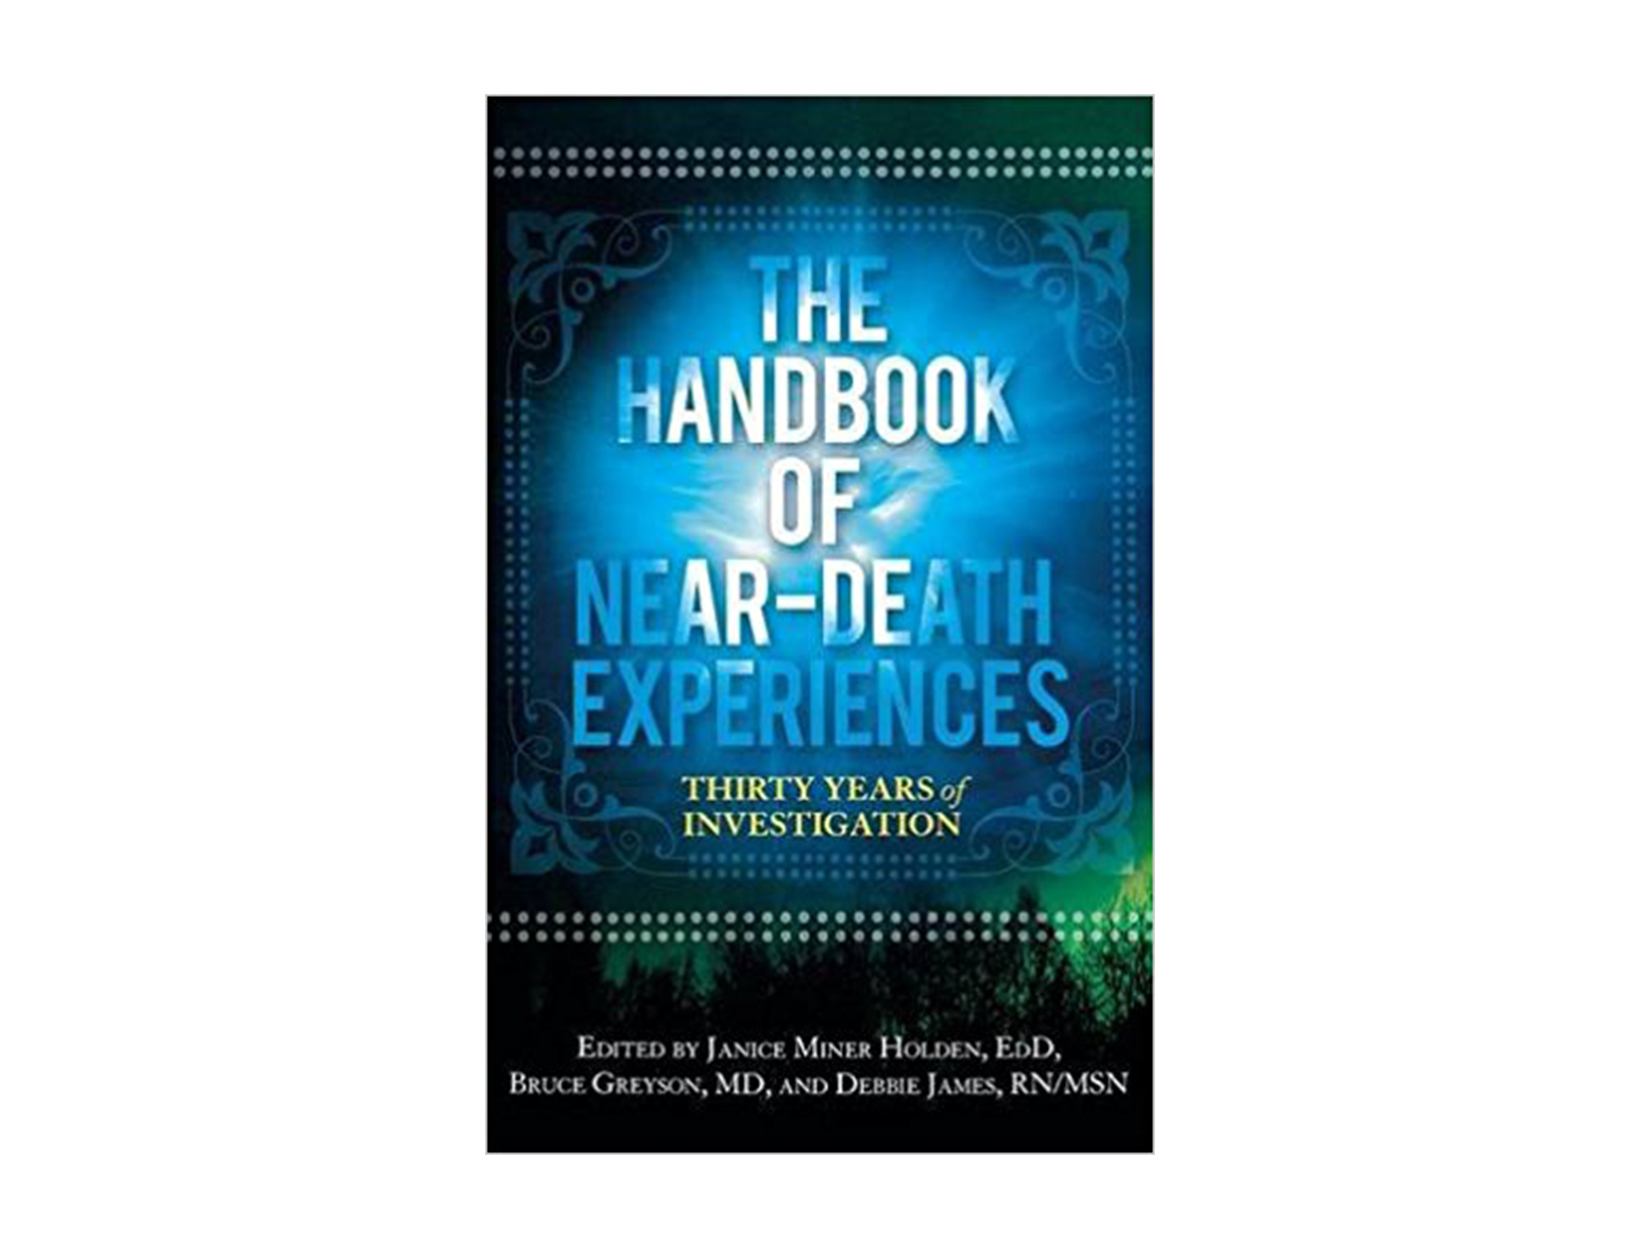 The Handbook of Near-Death Experiences: Thirty Years of Investigation edited by Janice Miner Holden, EdD, Bruce Greyson, M.D., & Debbie James, RN/MSN